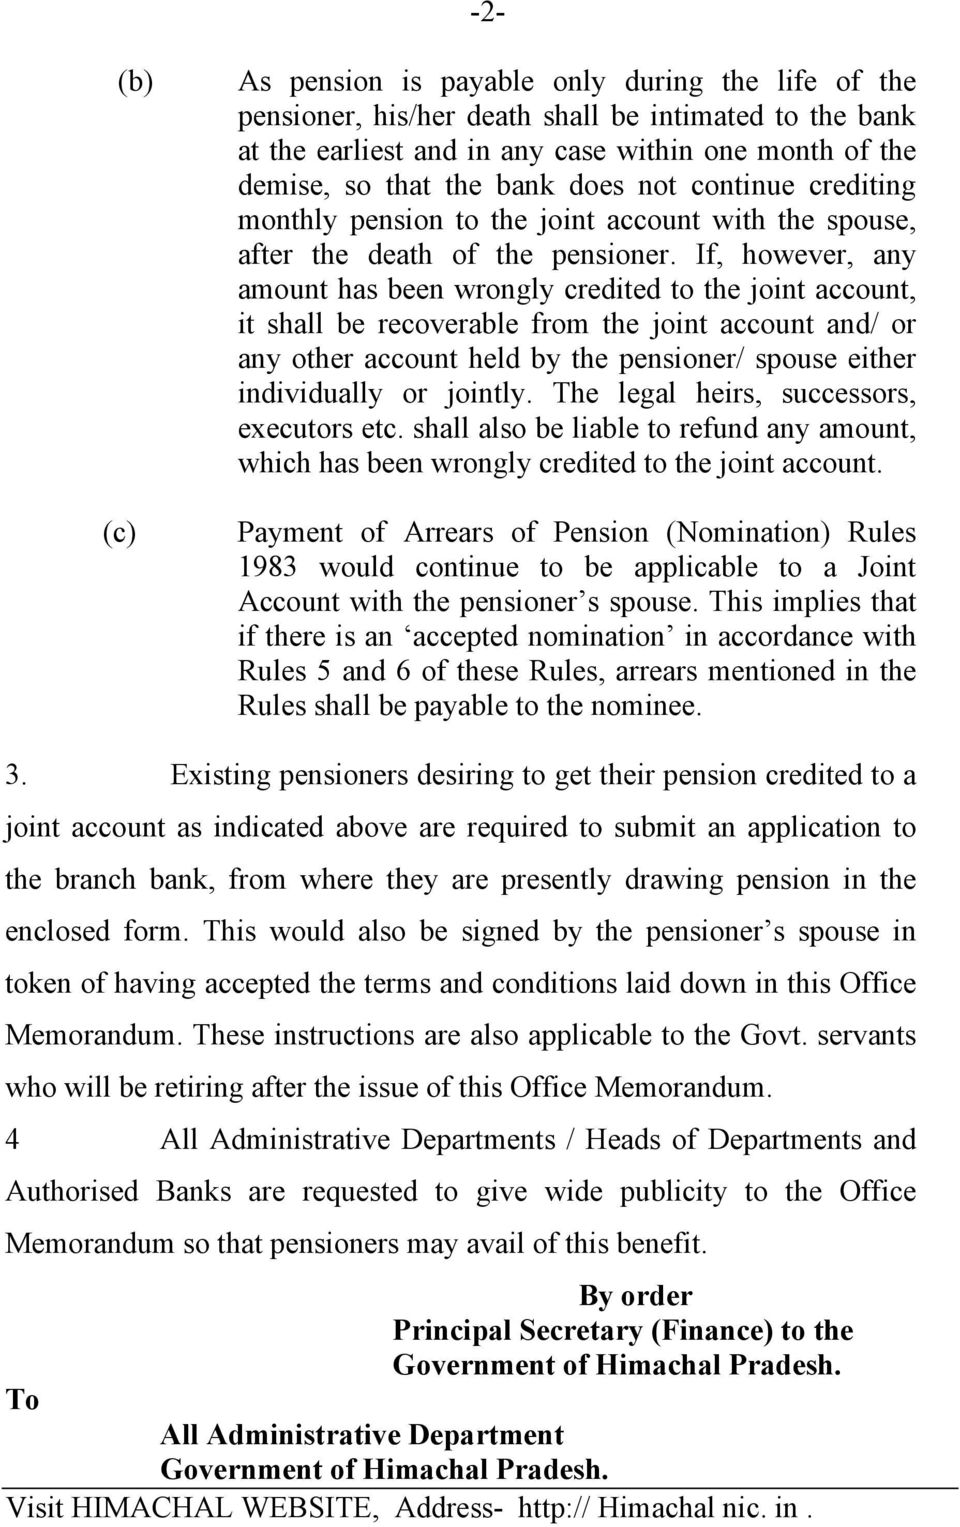 If, however, any amount has been wrongly credited to the joint account, it shall be recoverable from the joint account and/ or any other account held by the pensioner/ spouse either individually or